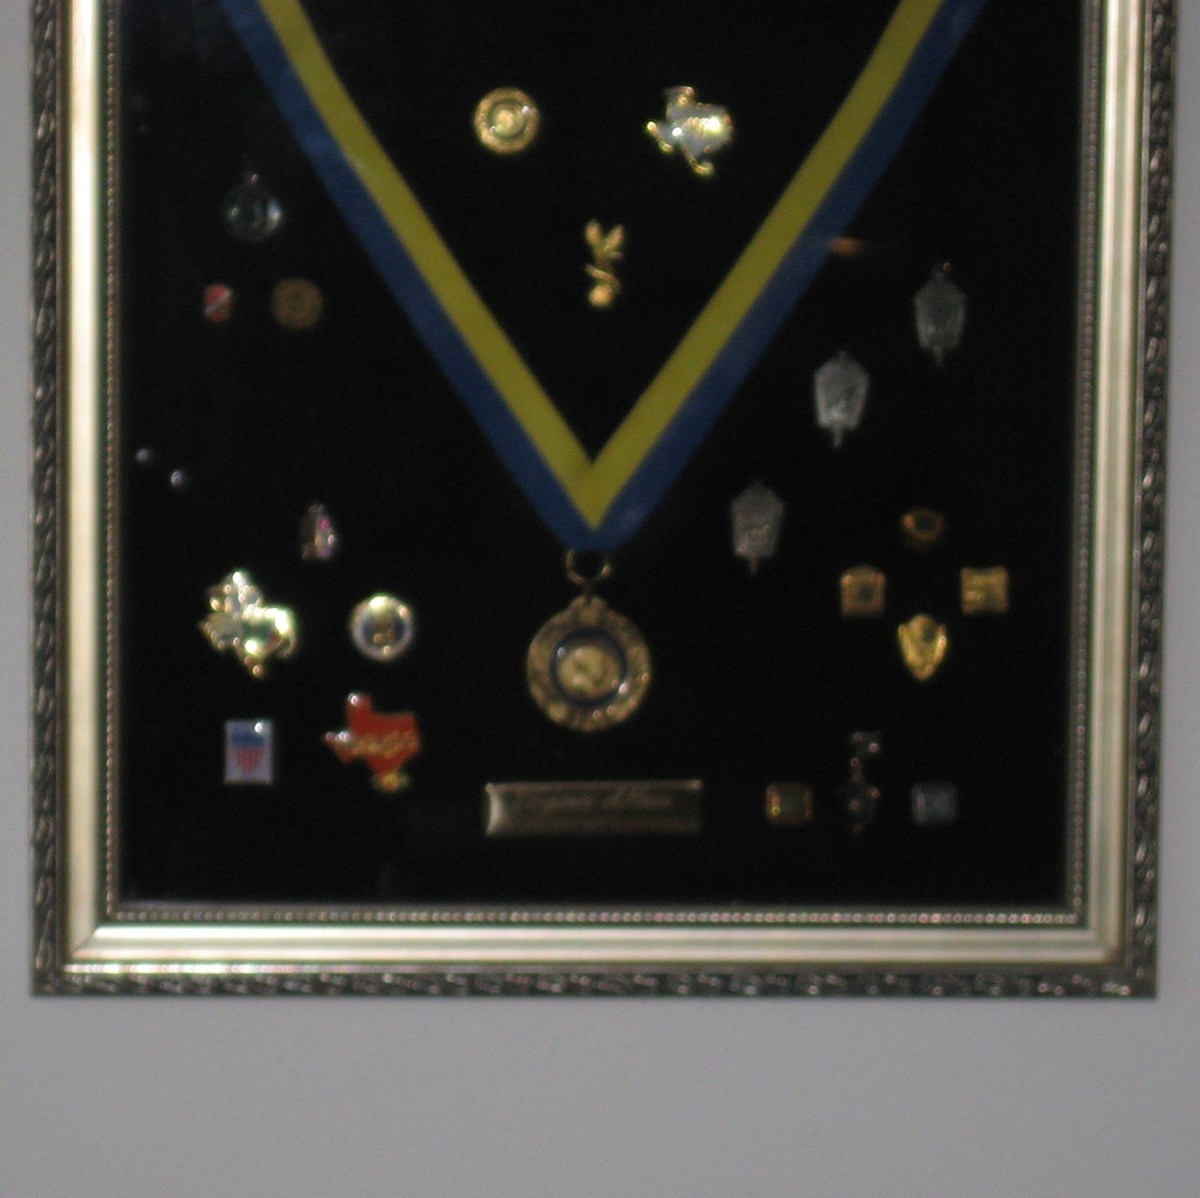 Fill a Shadow Box with Treasured Mementos